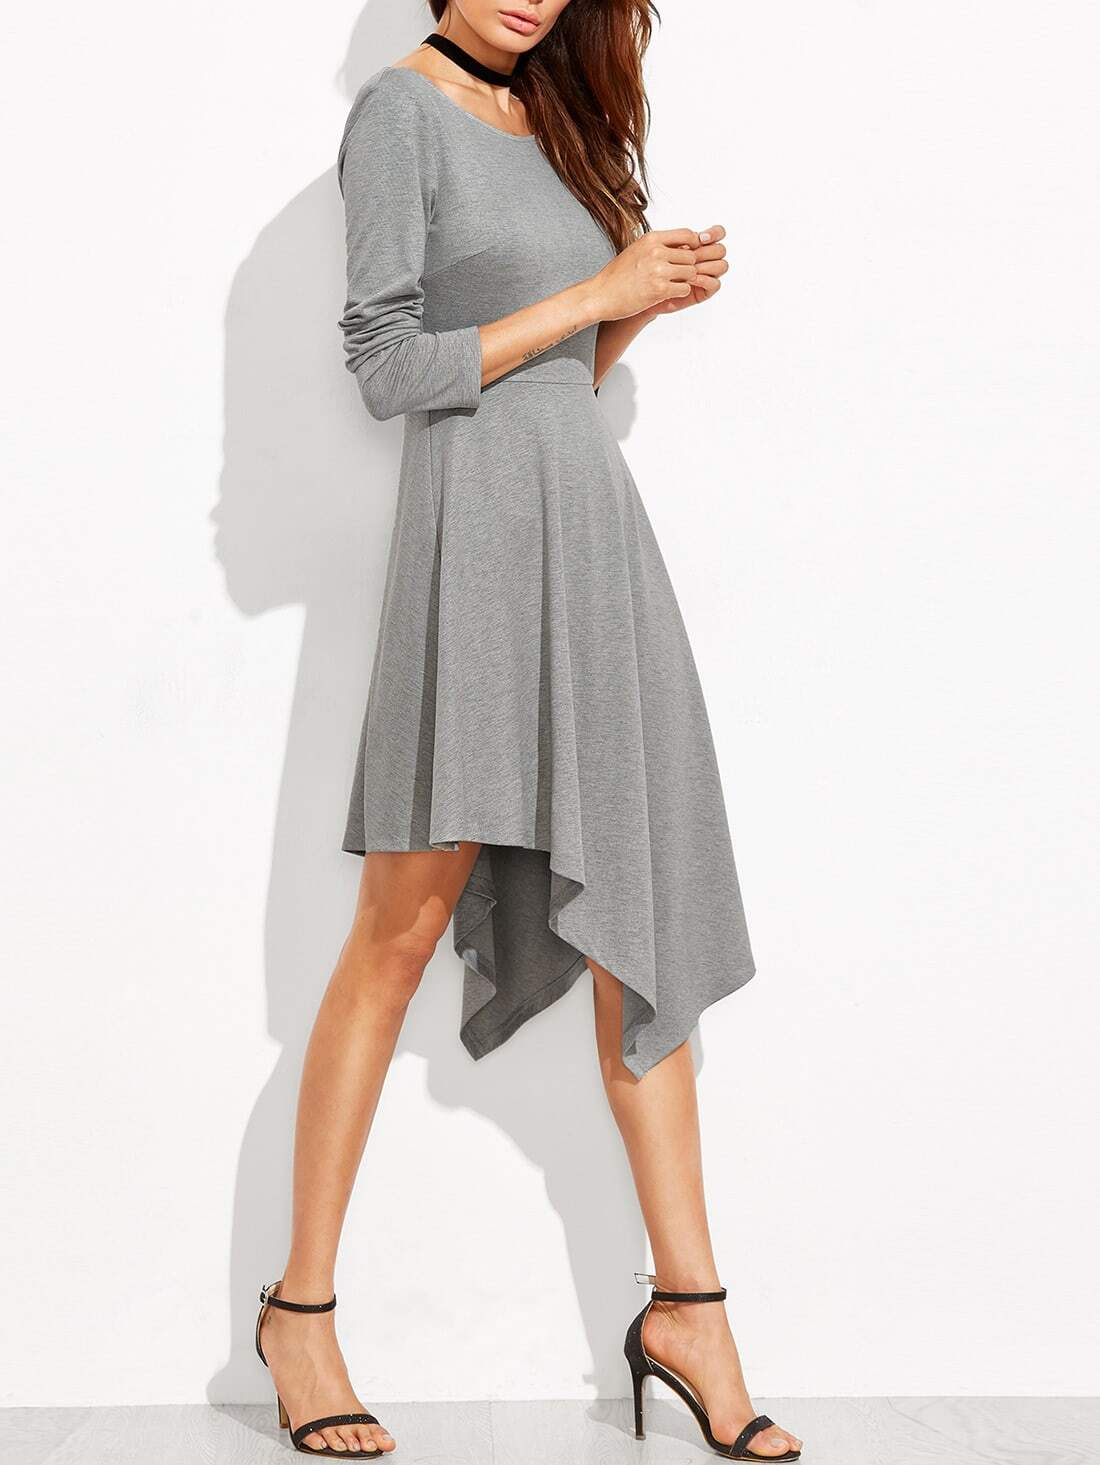 Heather Grey Long Sleeve Asymmetric Dress dress160908702